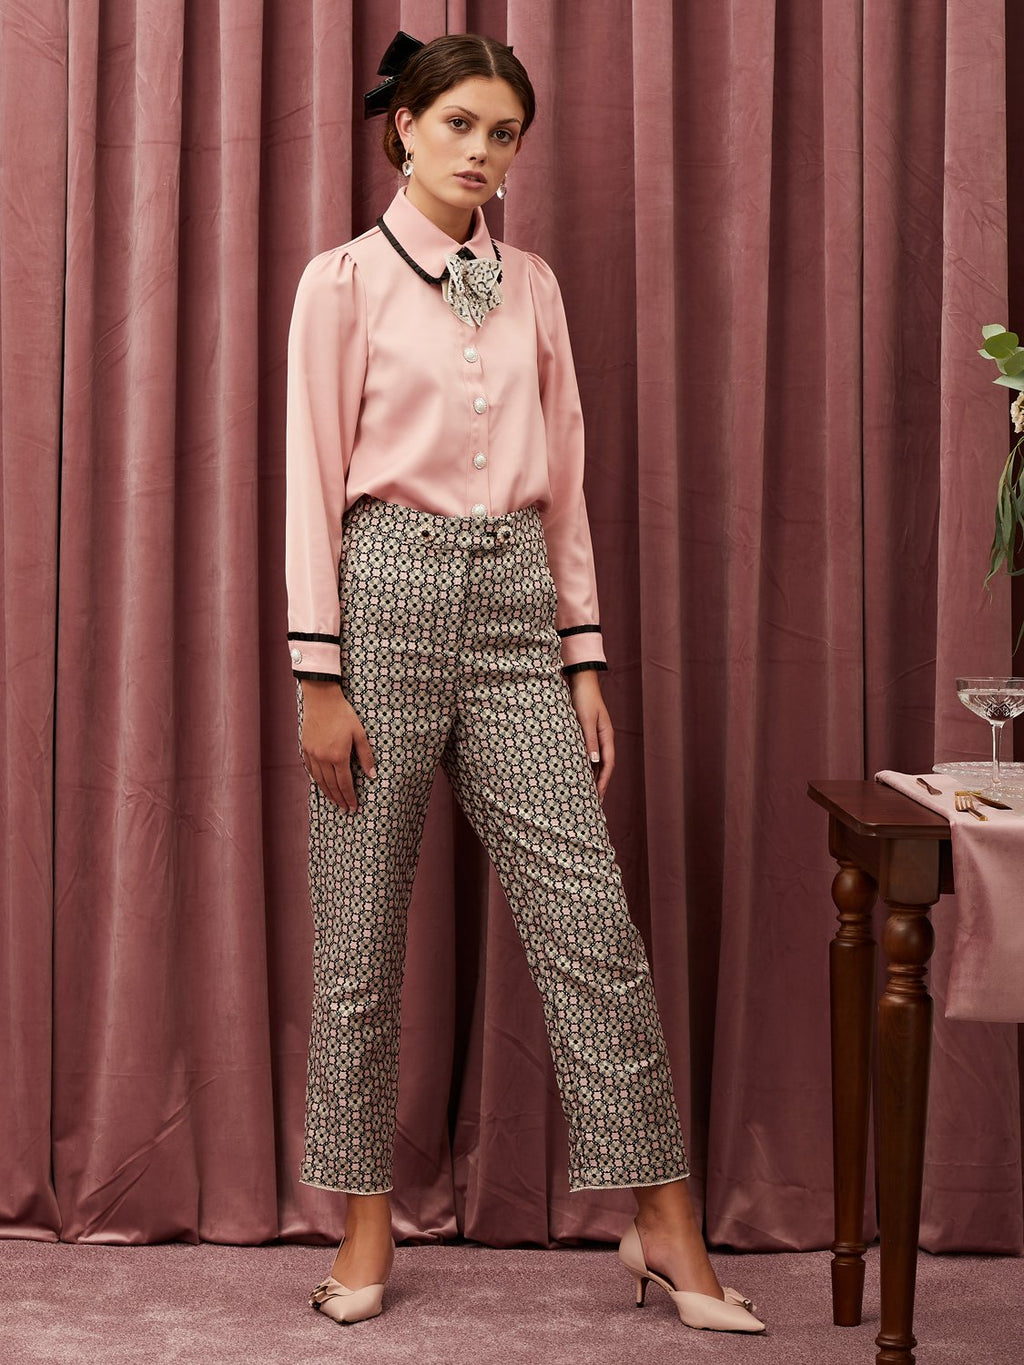 Sister Jane Tapered trousers in a tile jacquard design. Featuring stand out gem buttons on the waistband and a gem trim at the leg opening. This style is lined in a satin feel fabric.